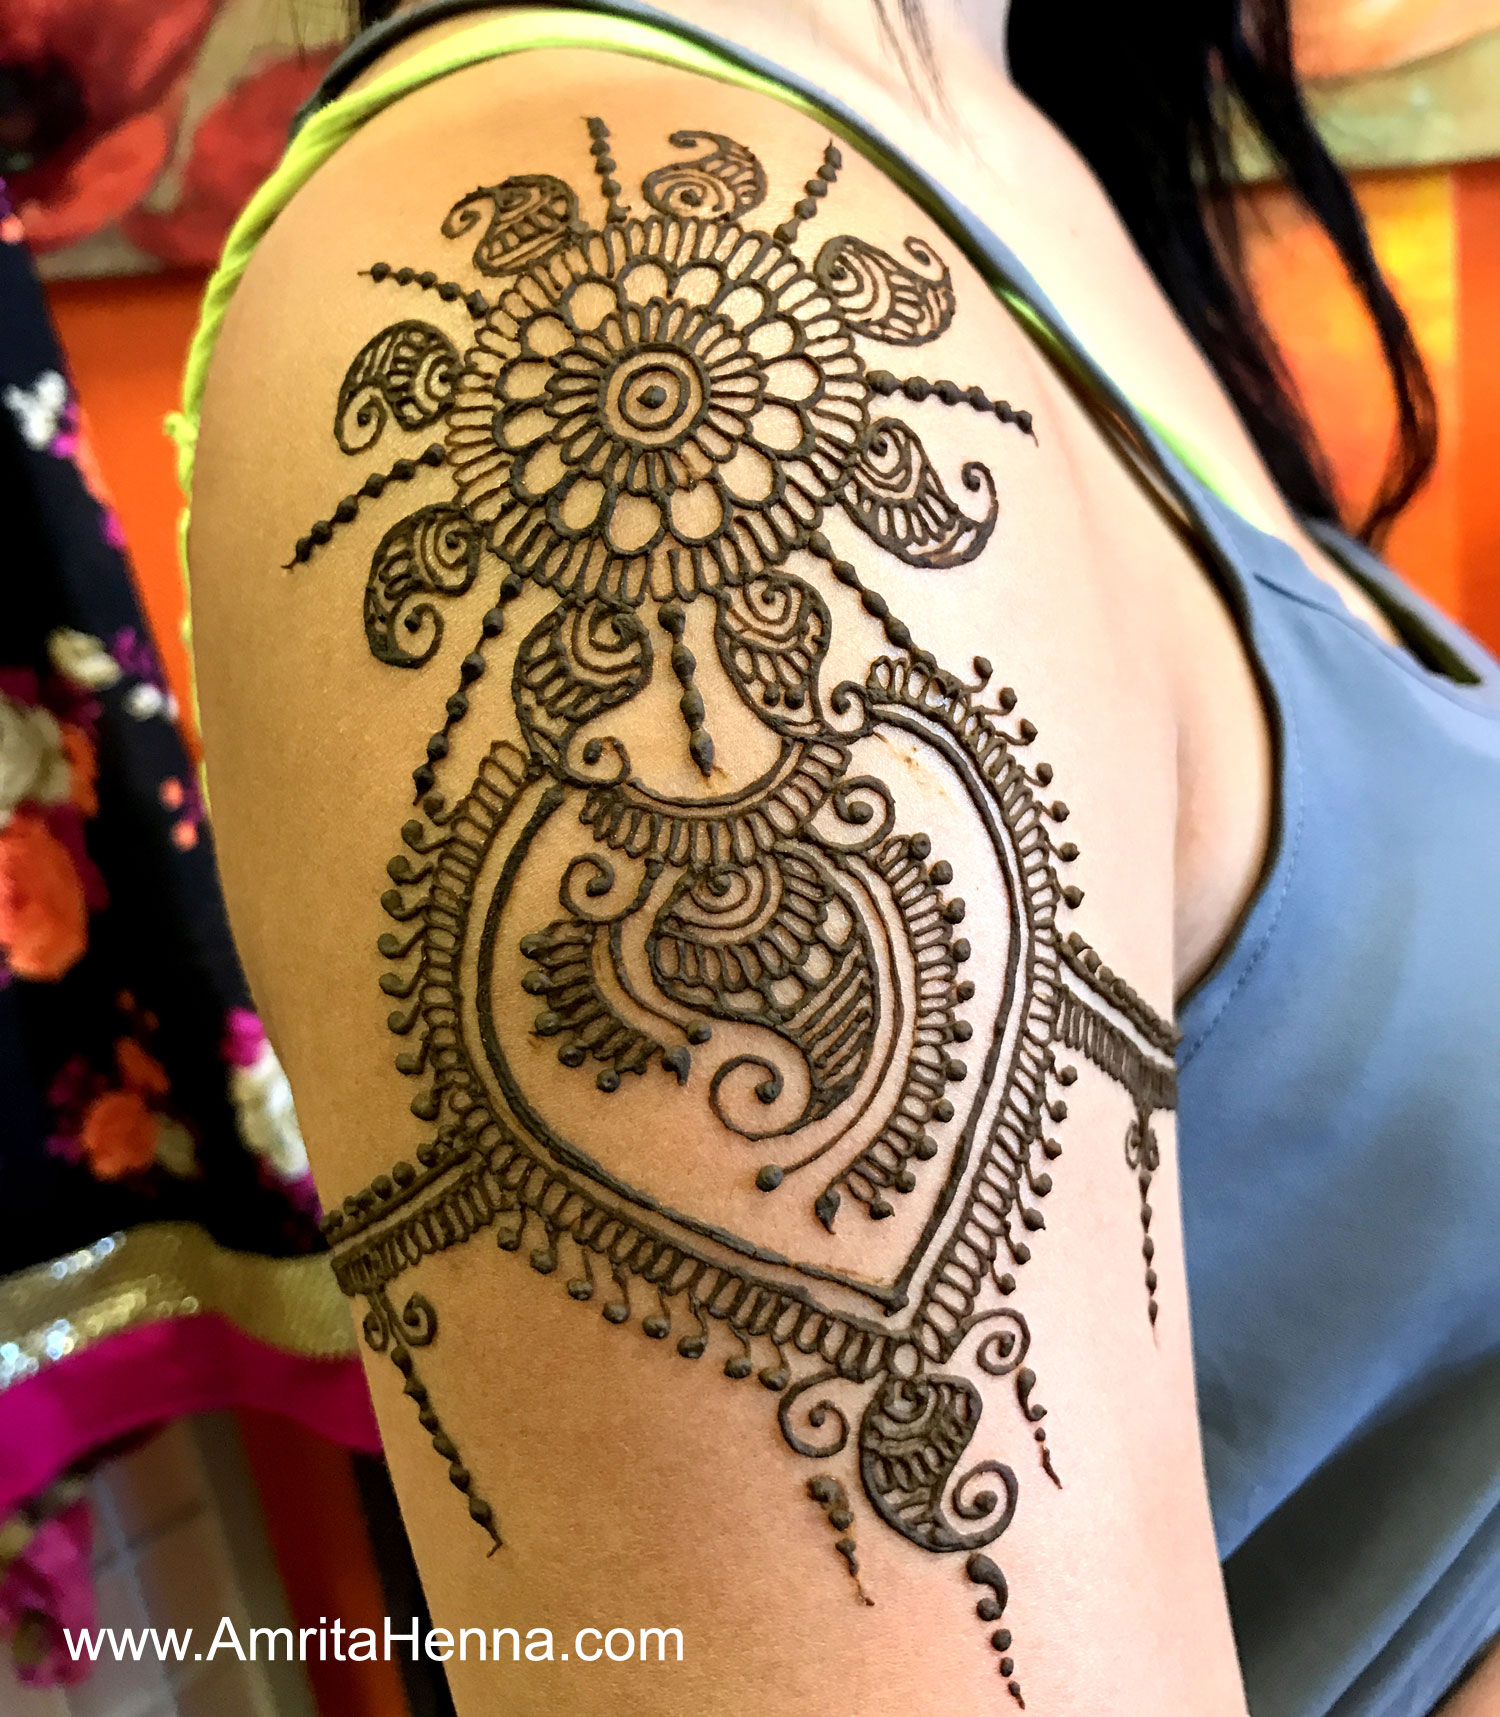 TOP 5 EASY SHOULDER HENNA DESIGNS - 5 MUST TRY MEHNDI DESIGNS FOR SHOULDER - 5 SIMPLE AND EASY MEHENDI DESIGNS FOR THE SHOULDER - TOP 5 SIMPLE SHOULDER MEHANDI DESIGNS - BEST SHOULDER MEHNDI DESIGNS - 5 AWESOME SHOULDER HENNA DESIGNS FOR BEGINNERS - TOP 5 LATEST SHOULDER MEHENDI DESIGNS FOR BEGINNERS - TOP 5 BEST SHOULDER MEHANDI DESIGNS FOR BEGINNERS - SHOULDER HENNA DESIGNS - UNIQUE SHOULDER HENNA DESIGNS FOR BEGINNERS - TOP 5 QUICK SHOULDER HENNA DESIGNS - QUICK MEHENDI DESIGNS FOR THE SHOULDER